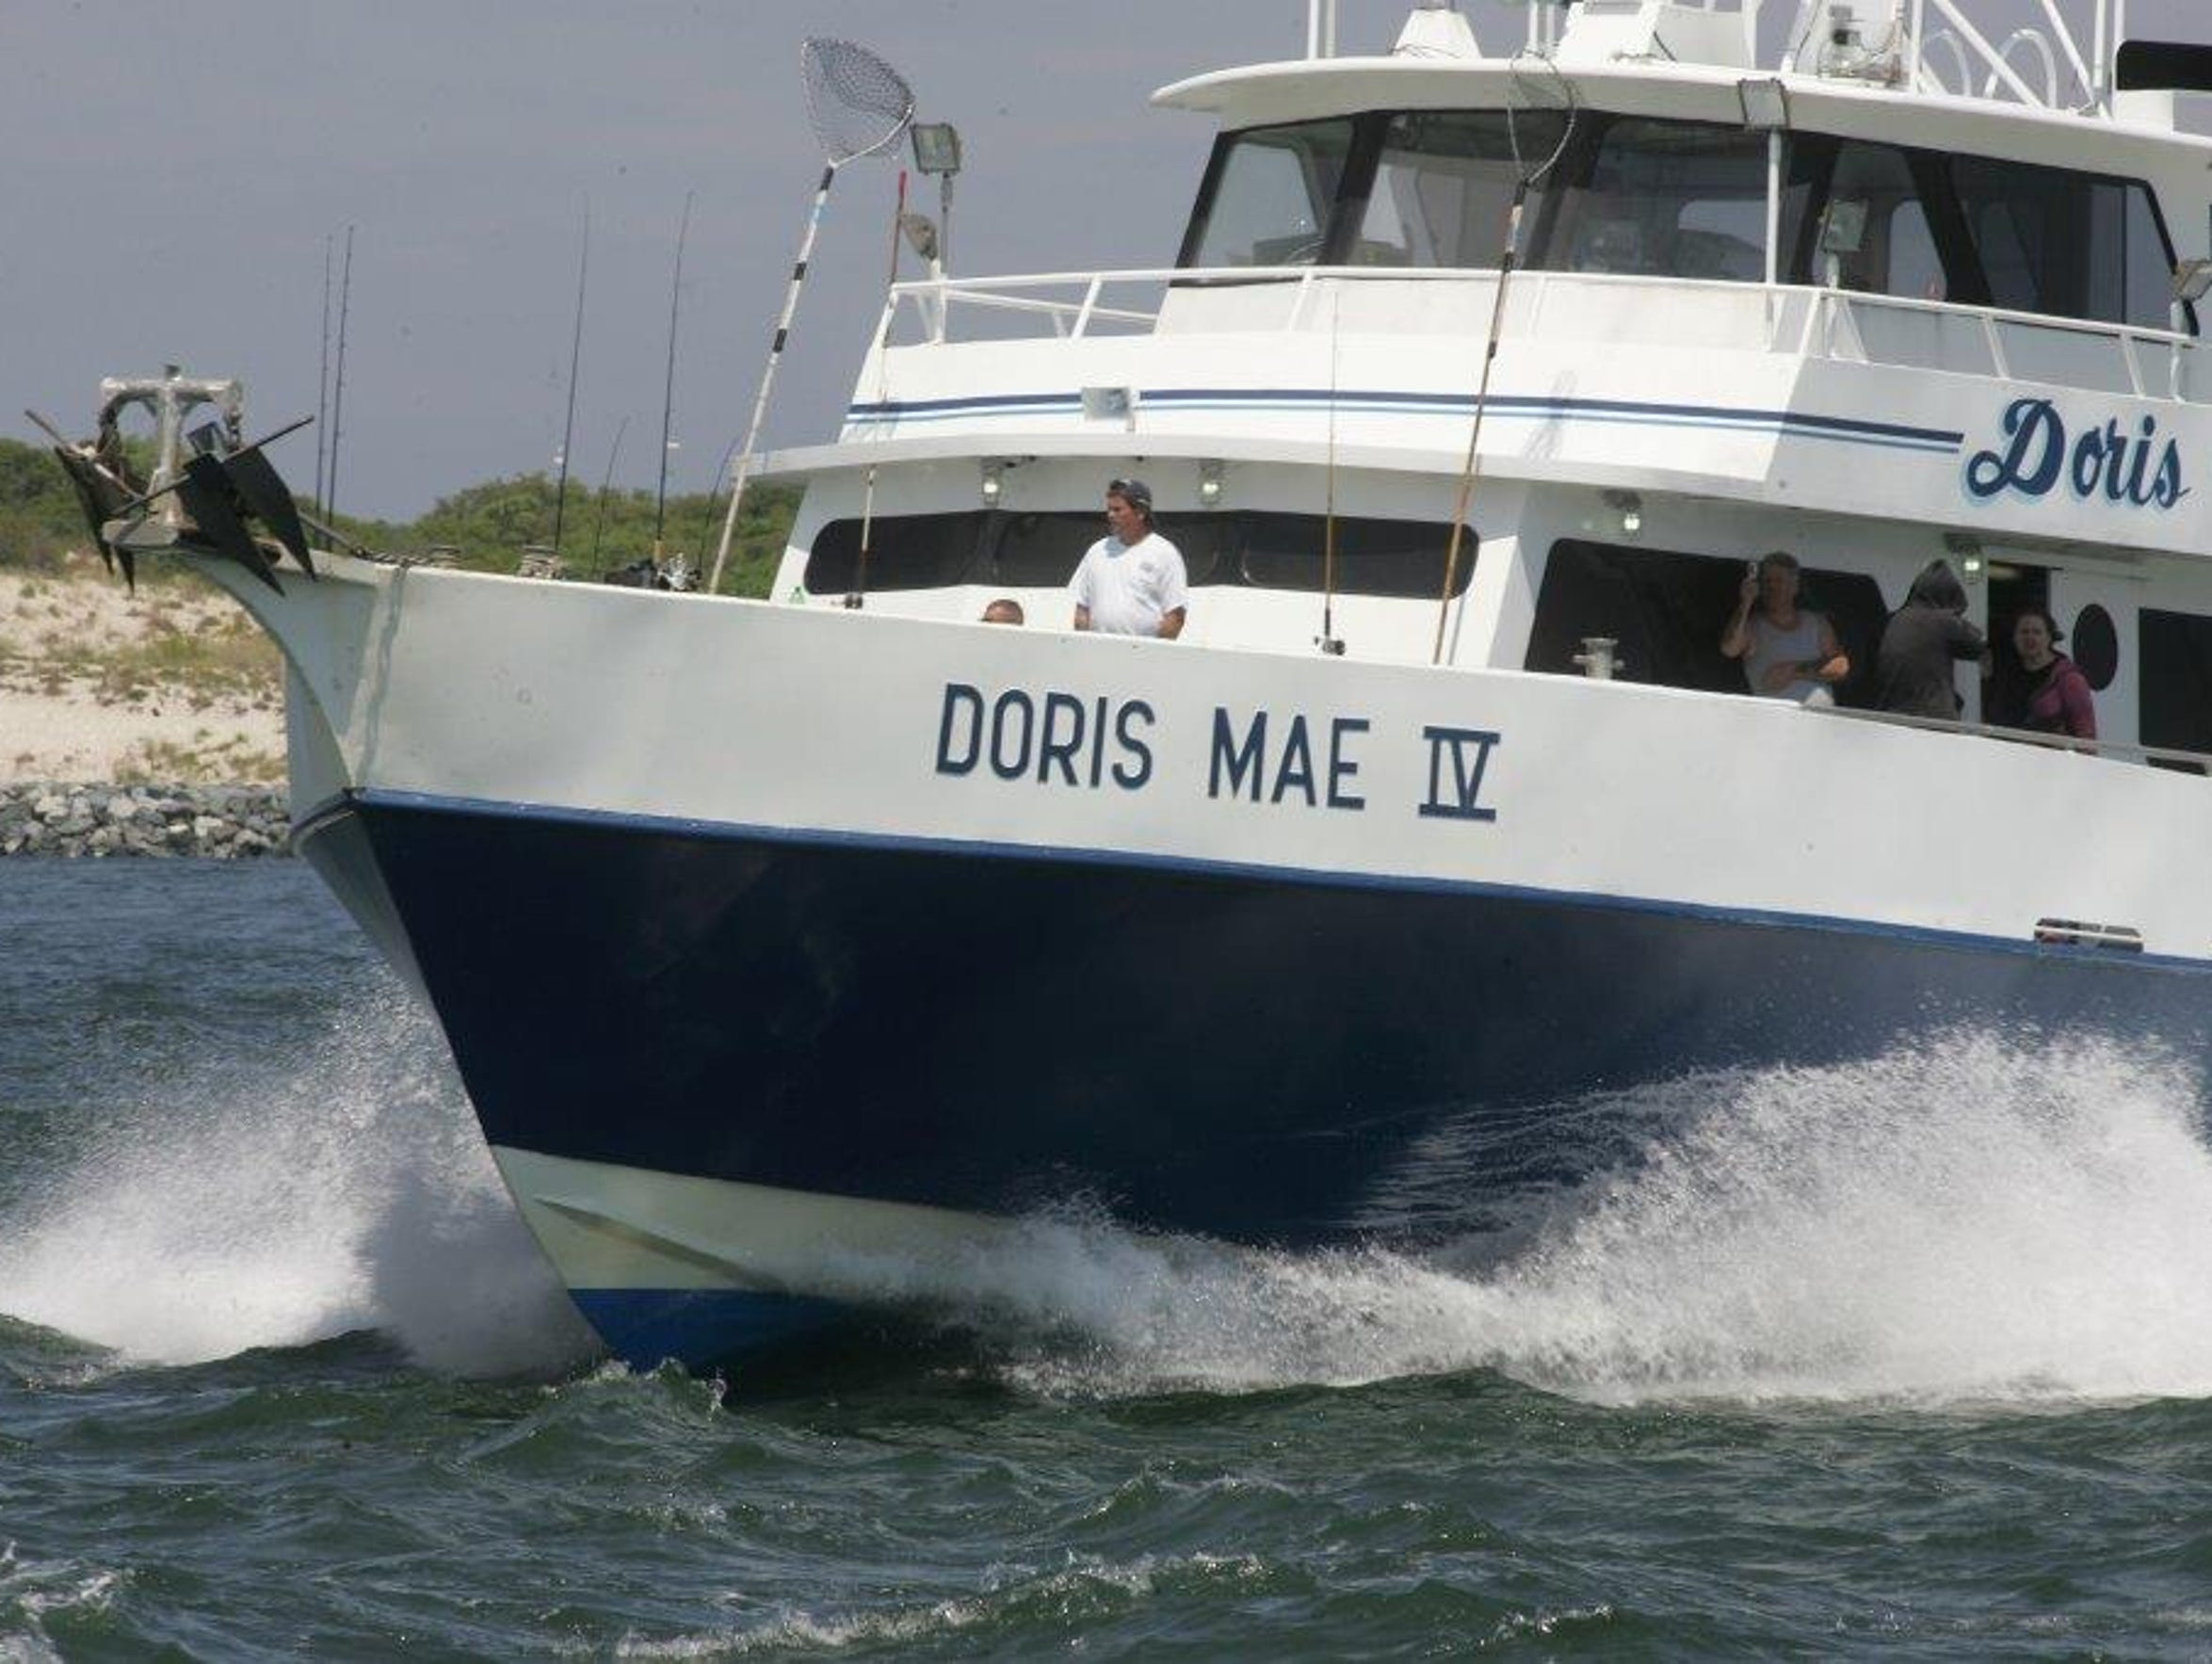 The Doris Mae IV was sold earlier this year.